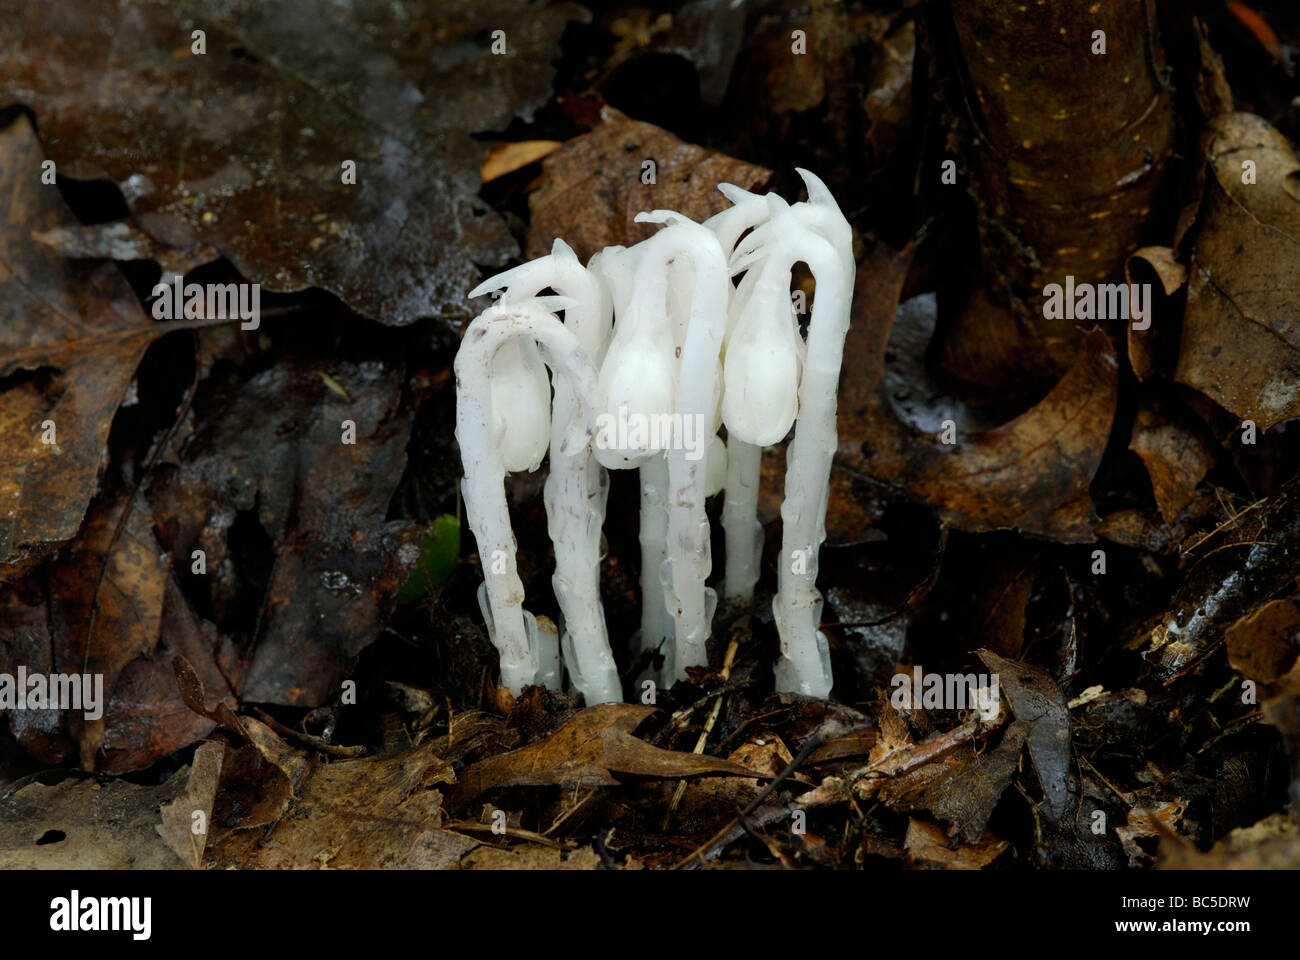 Indian pipe, Monotropa uniflora, una inusual no fotosintéticos, parásitos de plantas florecientes. Imagen De Stock